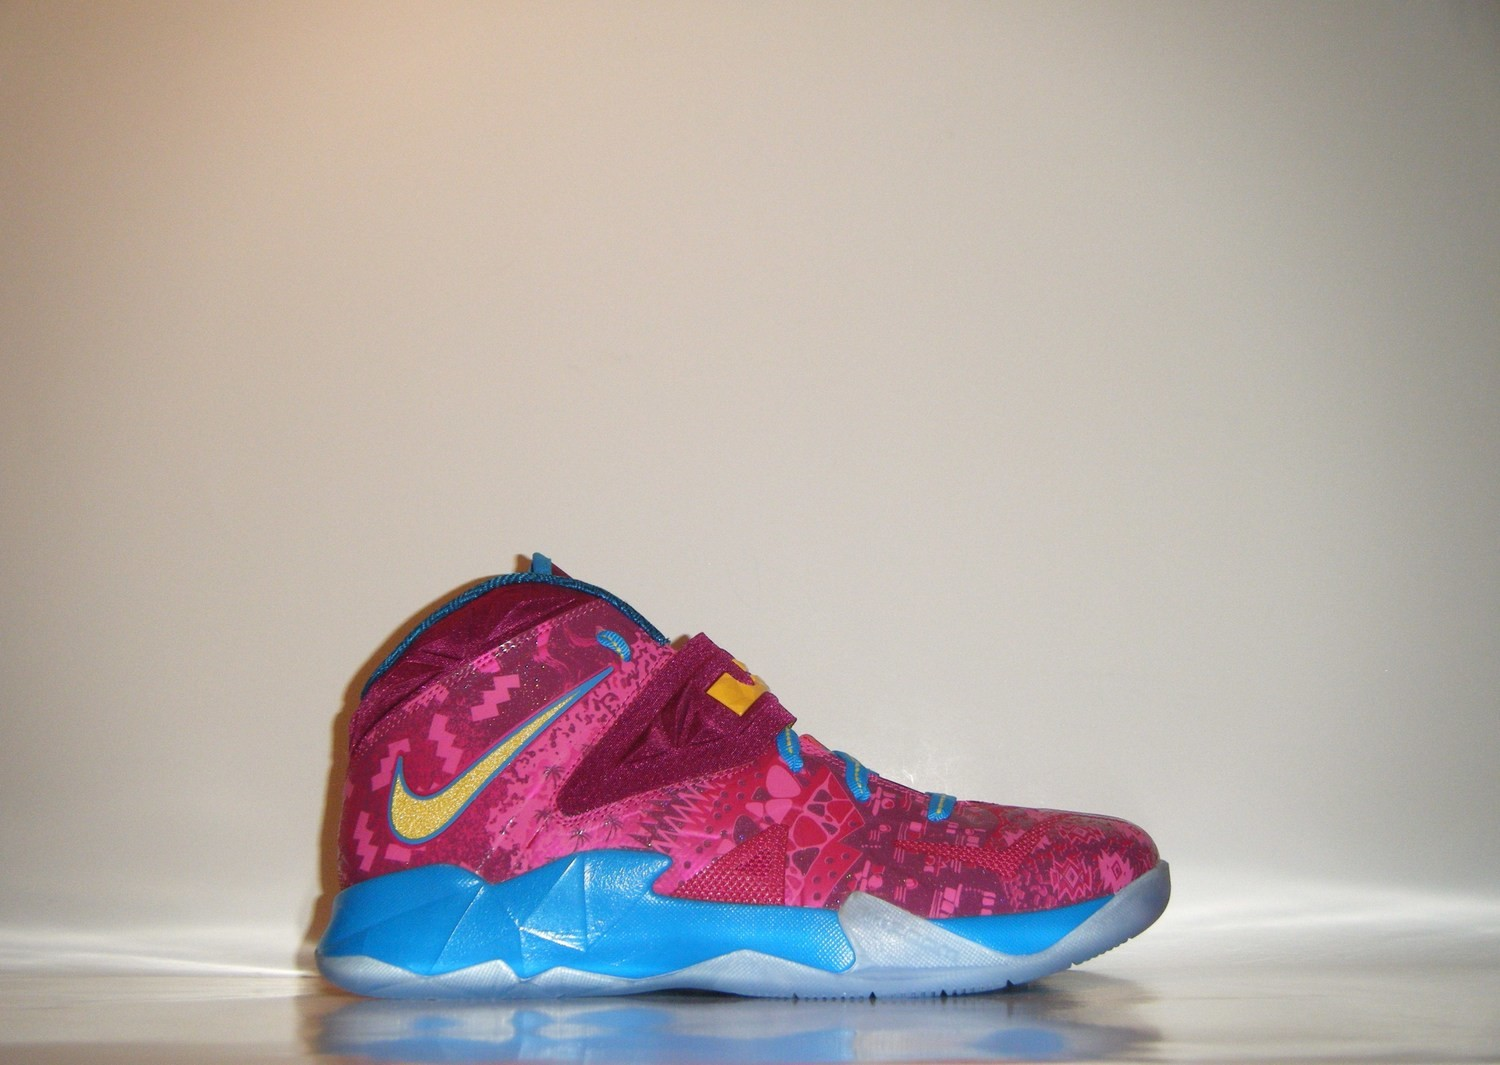 the best attitude 1e263 49f7a Nike Zoom Lebron Soldier VII 7 Promo Sample Sz. 9